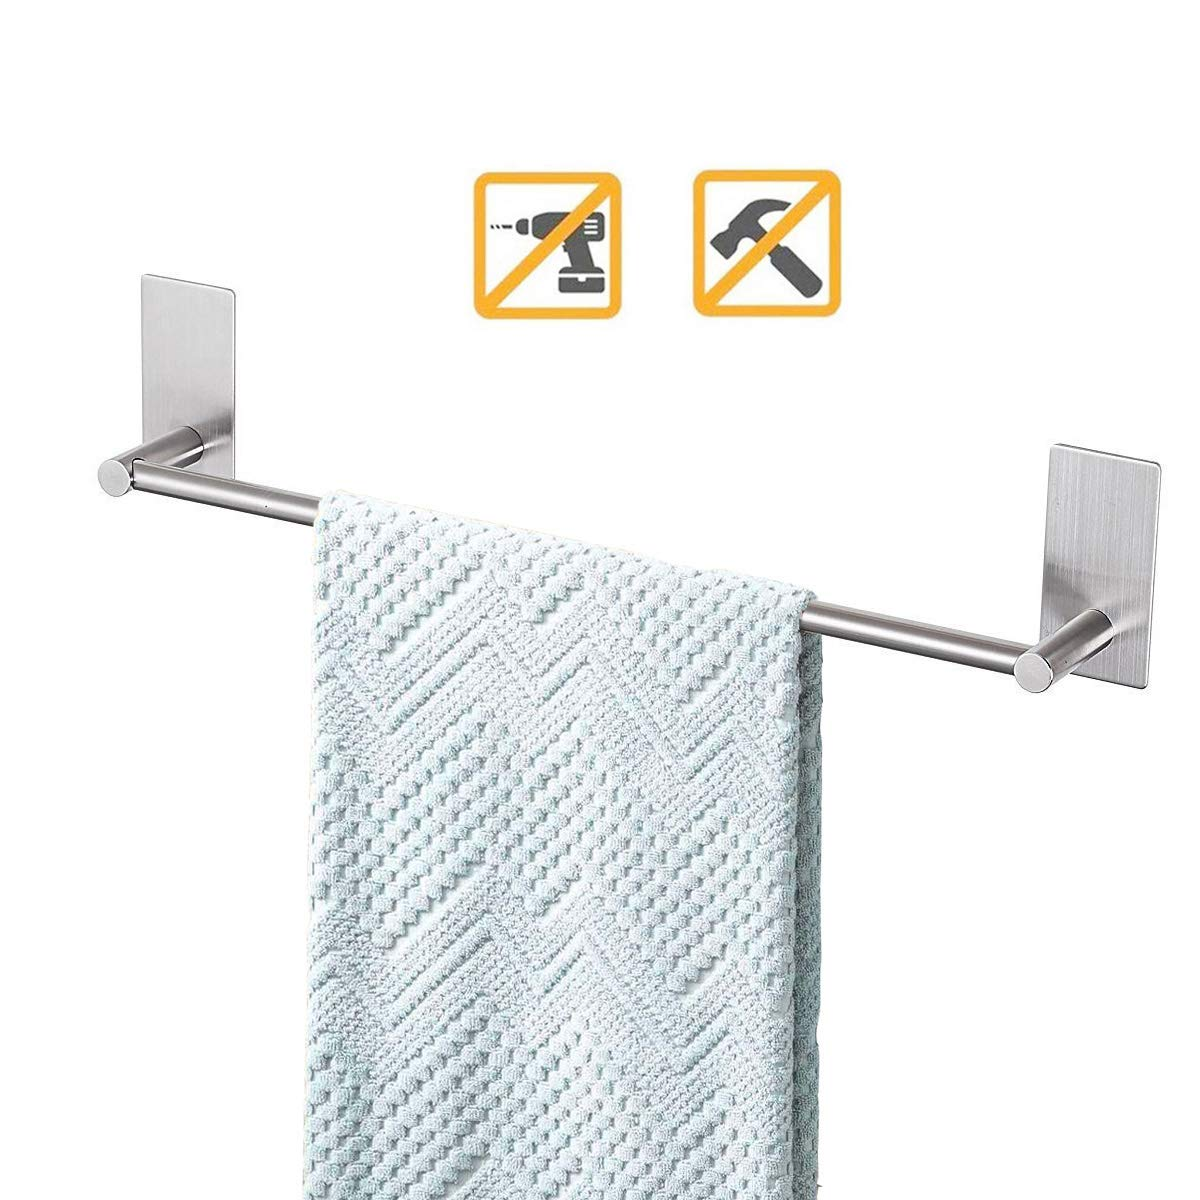 Songtec Bathroom Towel Bar 16inch, Easy Install with Self-Adhesive, NO Drilling on Walls, Premium SUS304 Stainless Steel - Brushed by Songtec